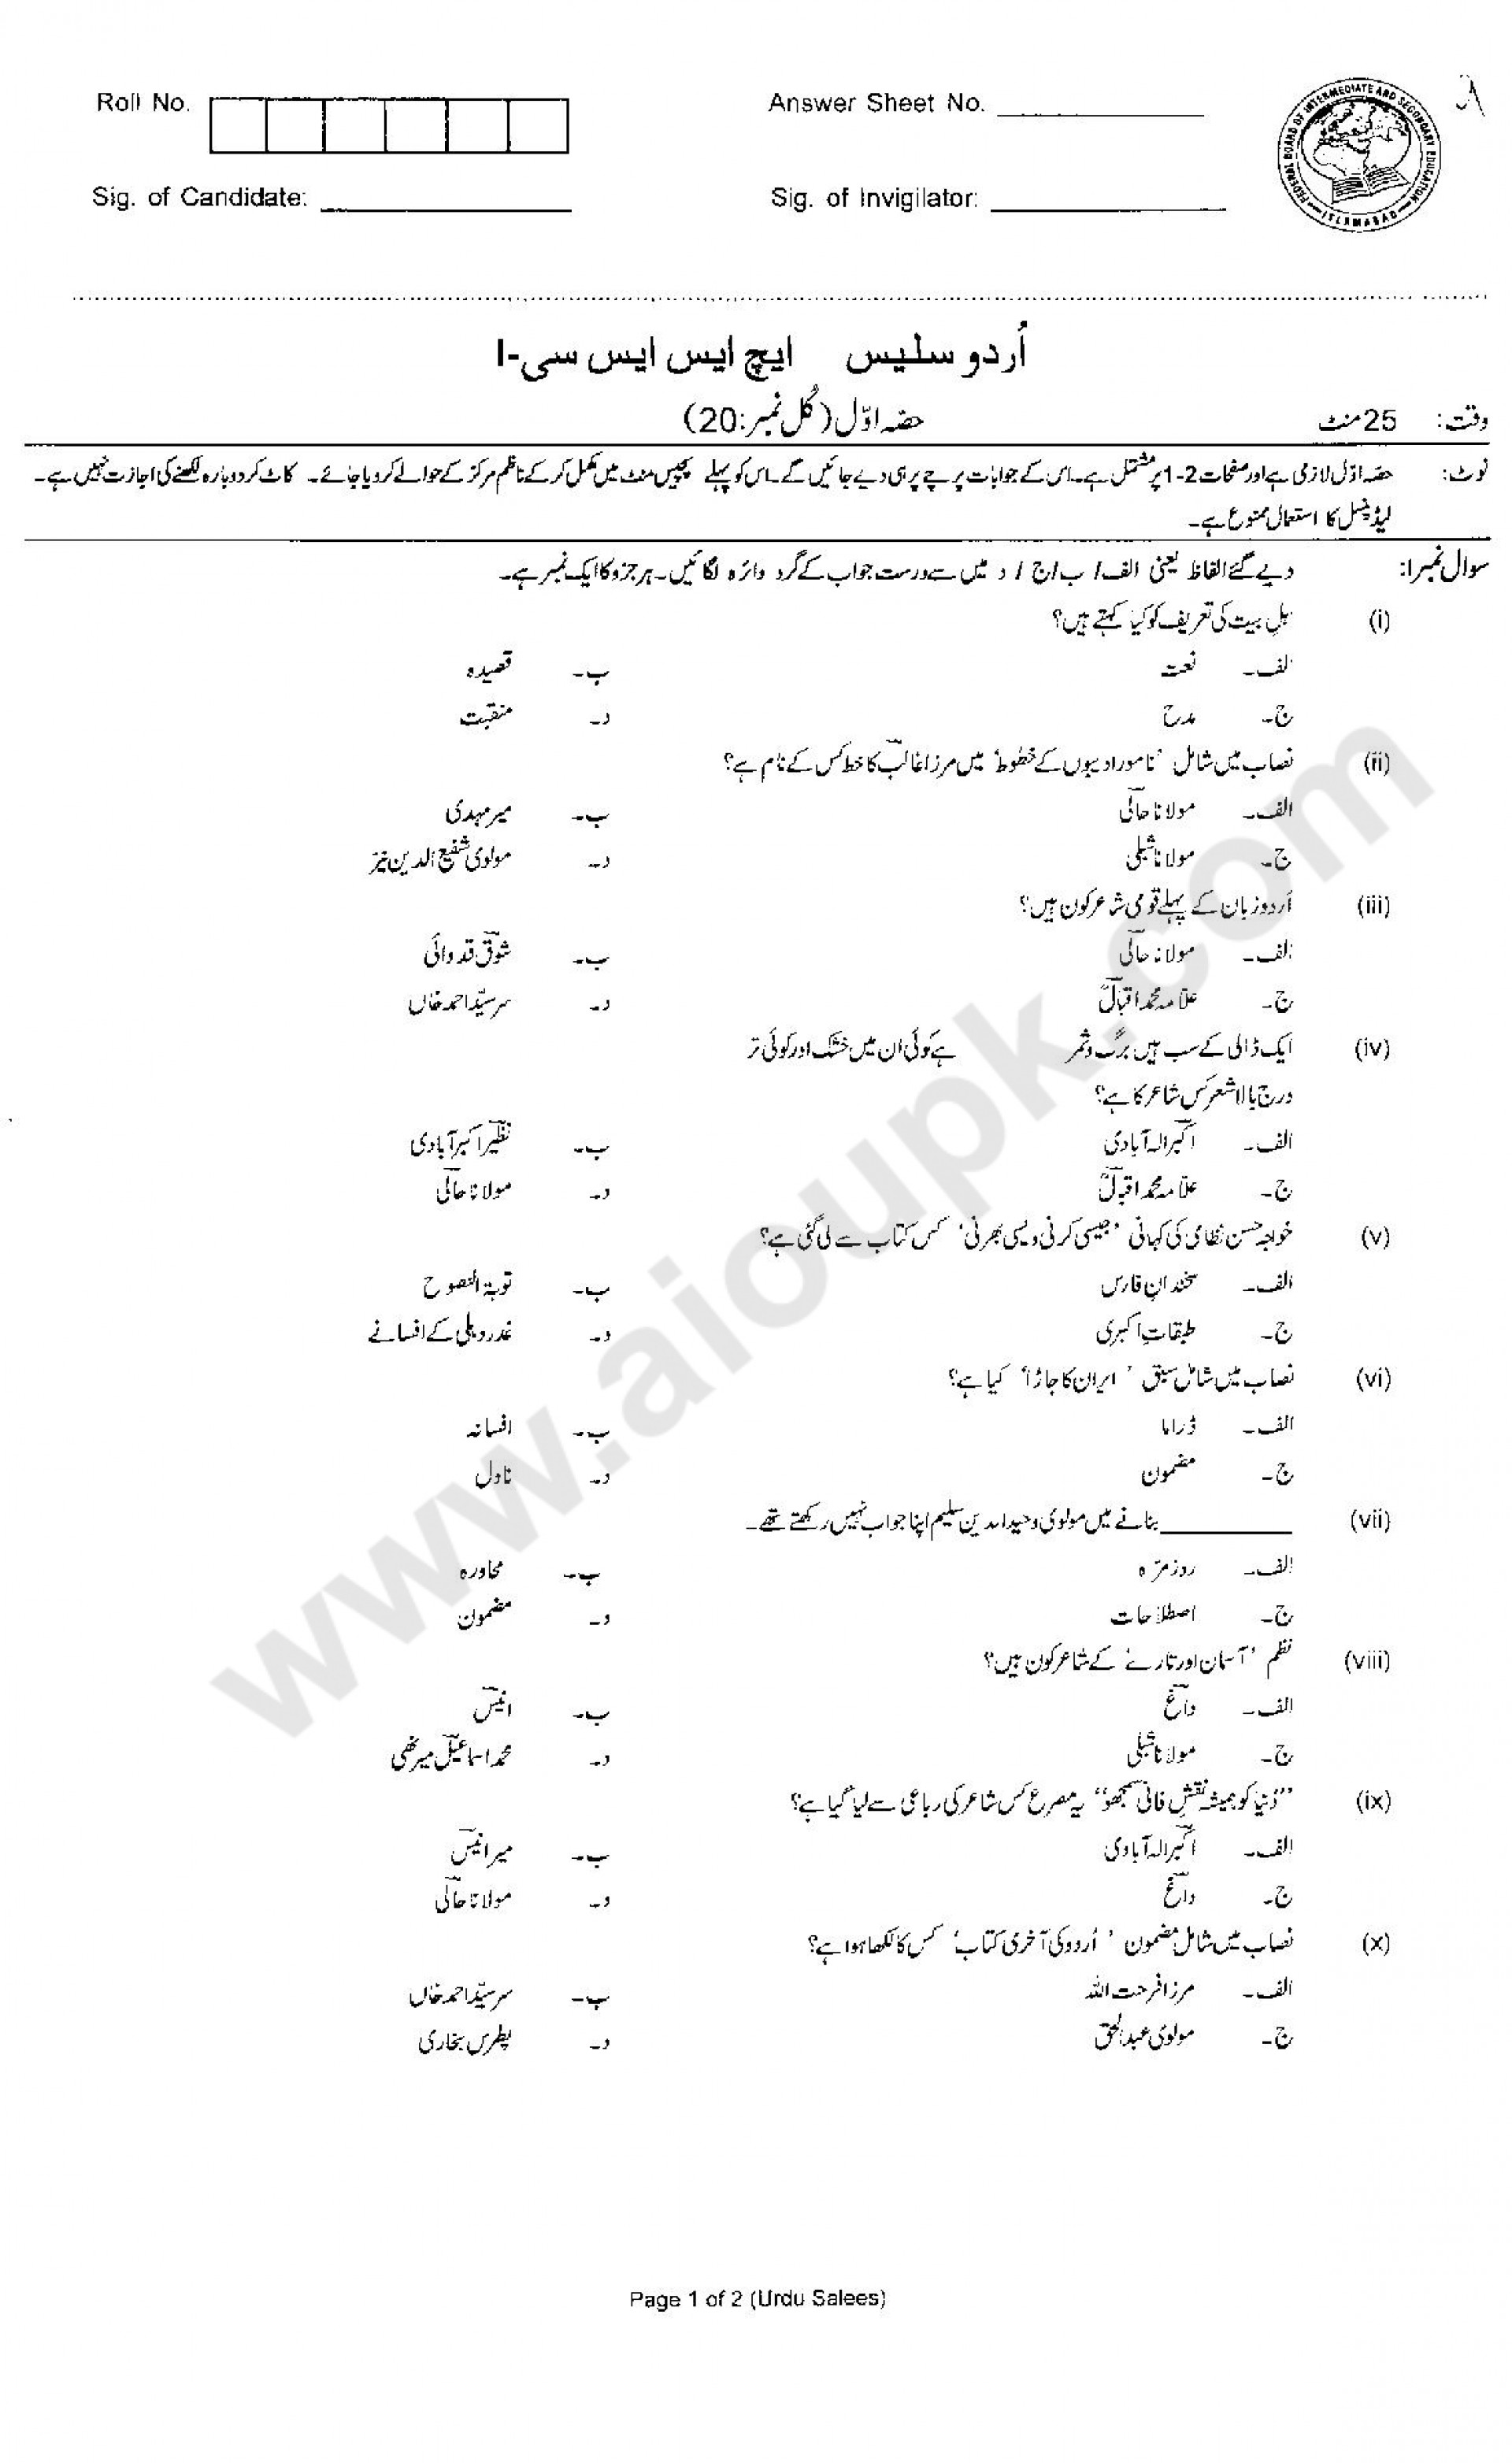 014 Essay Example Urdu Salees Of Hssc Annual Examinations Part Page Allama Dreaded Iqbal On In For Class 10 With Poetry Ka Shaheen Headings And 1920